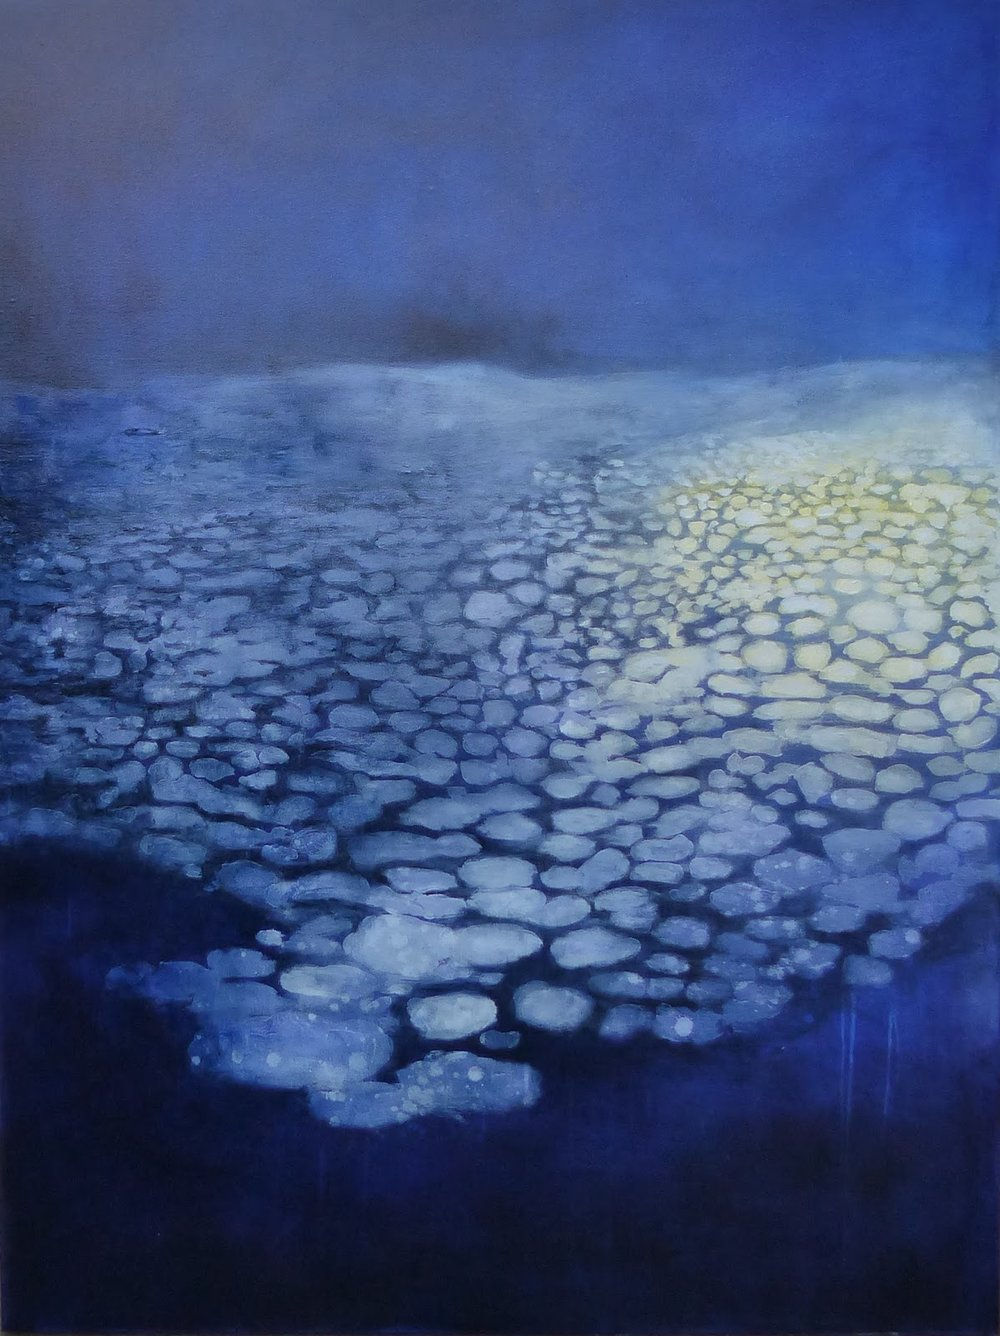 Katrine Claassens  'Ship Light in The Night'  Melted Antarctic sea ice, watercolour and oil on canvas  121 x 91 cm